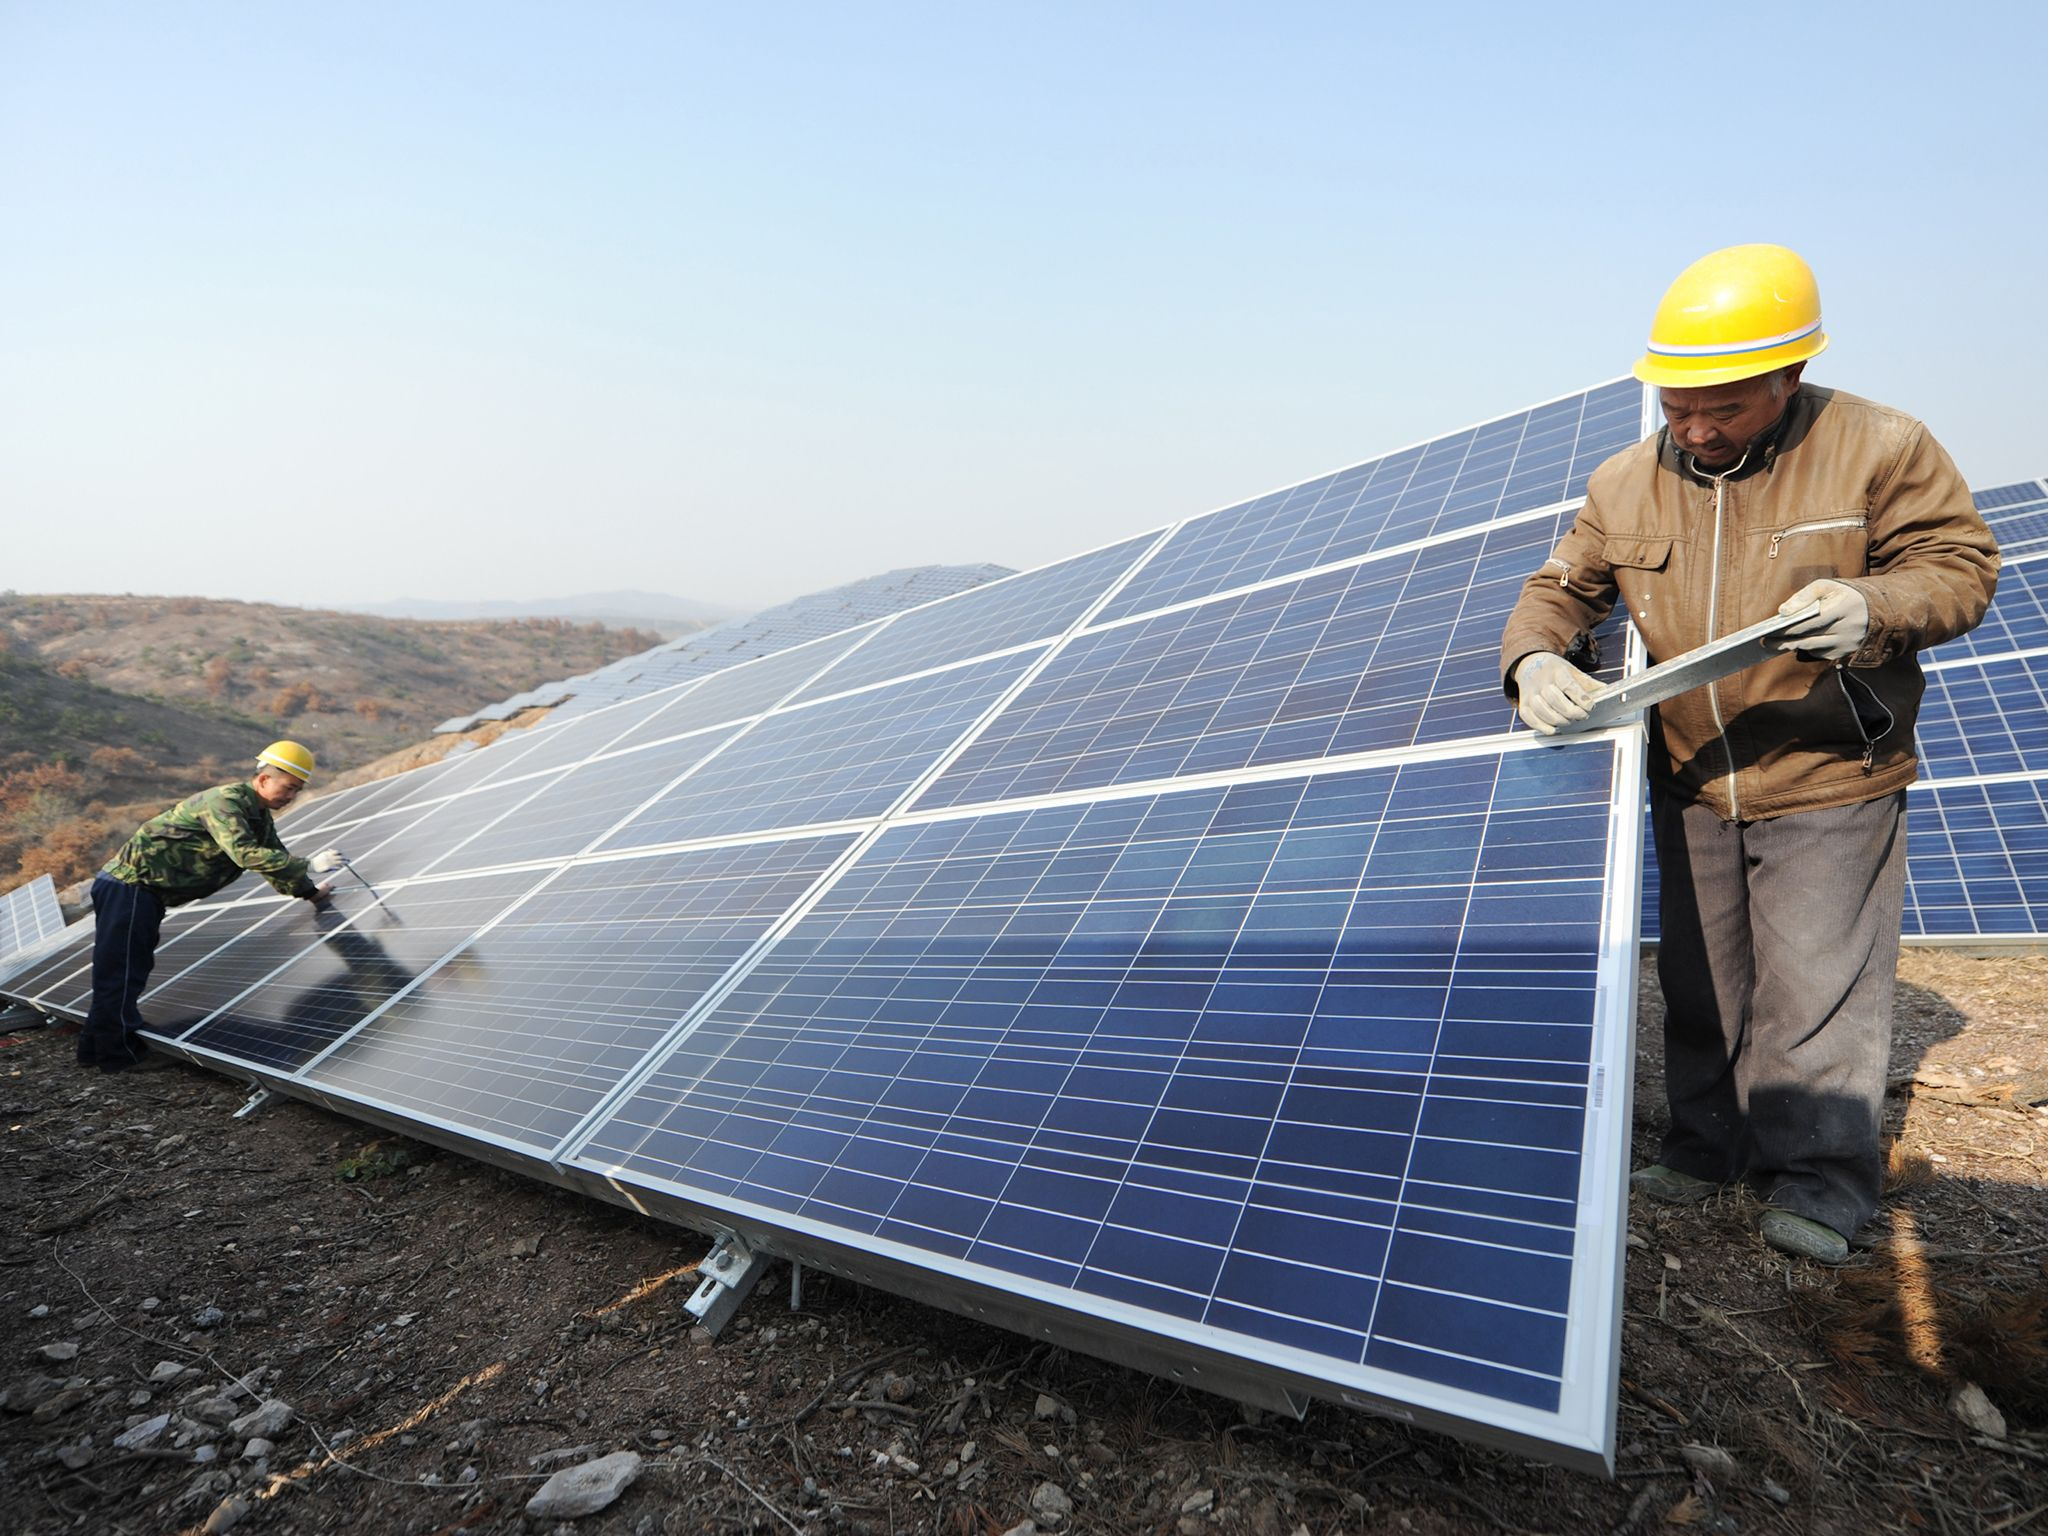 Why energy may soon be free thanks to solar, wind, storage